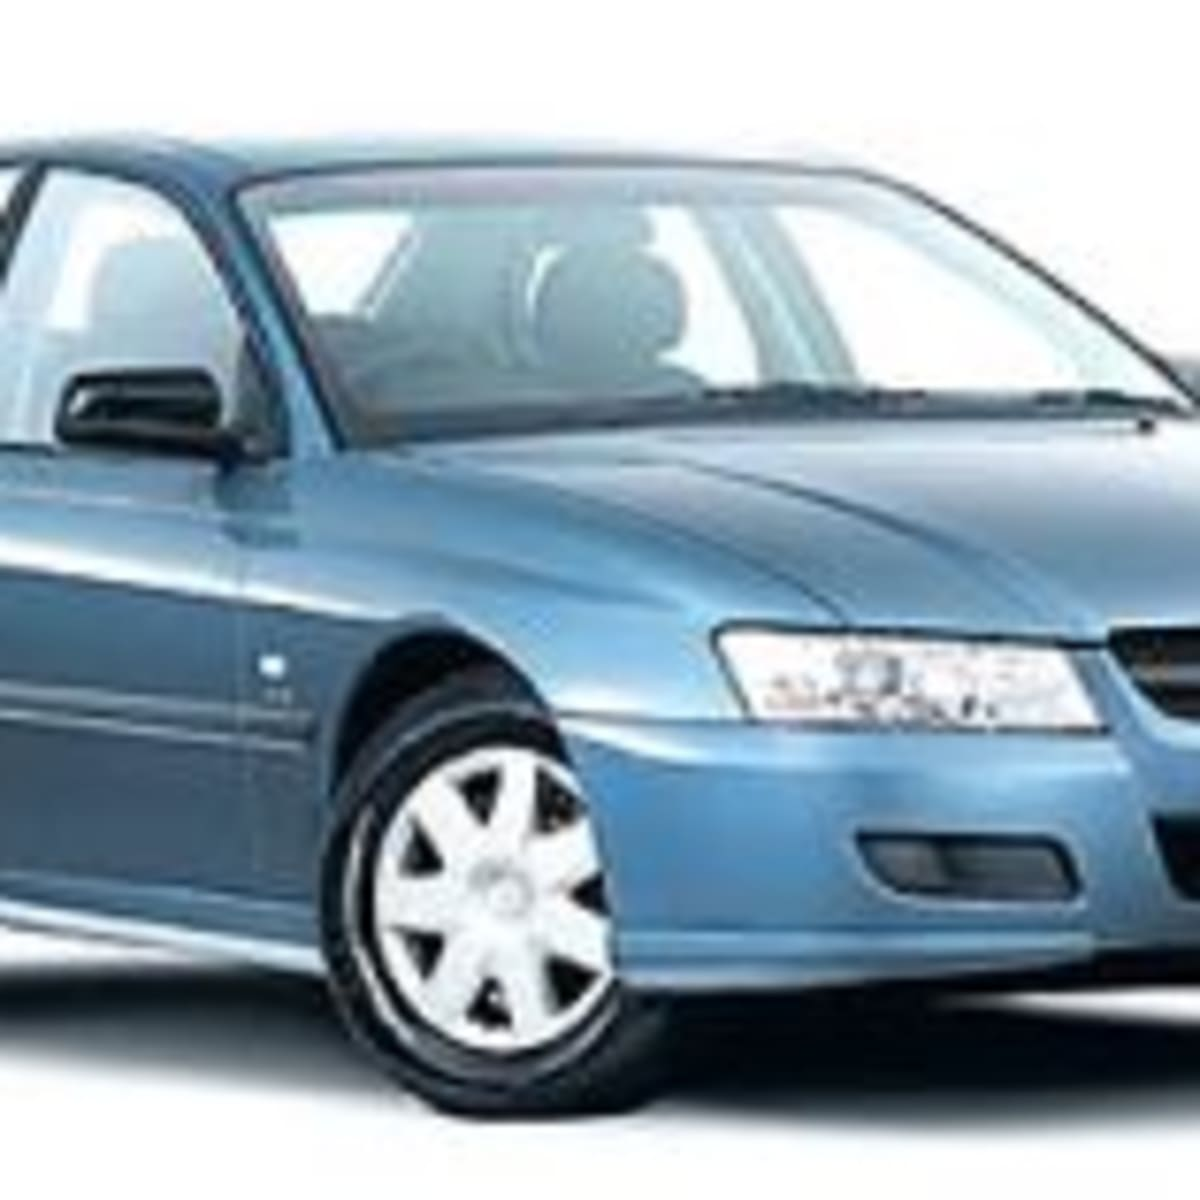 Holden Commodore with Electronic Stability Program (ESP